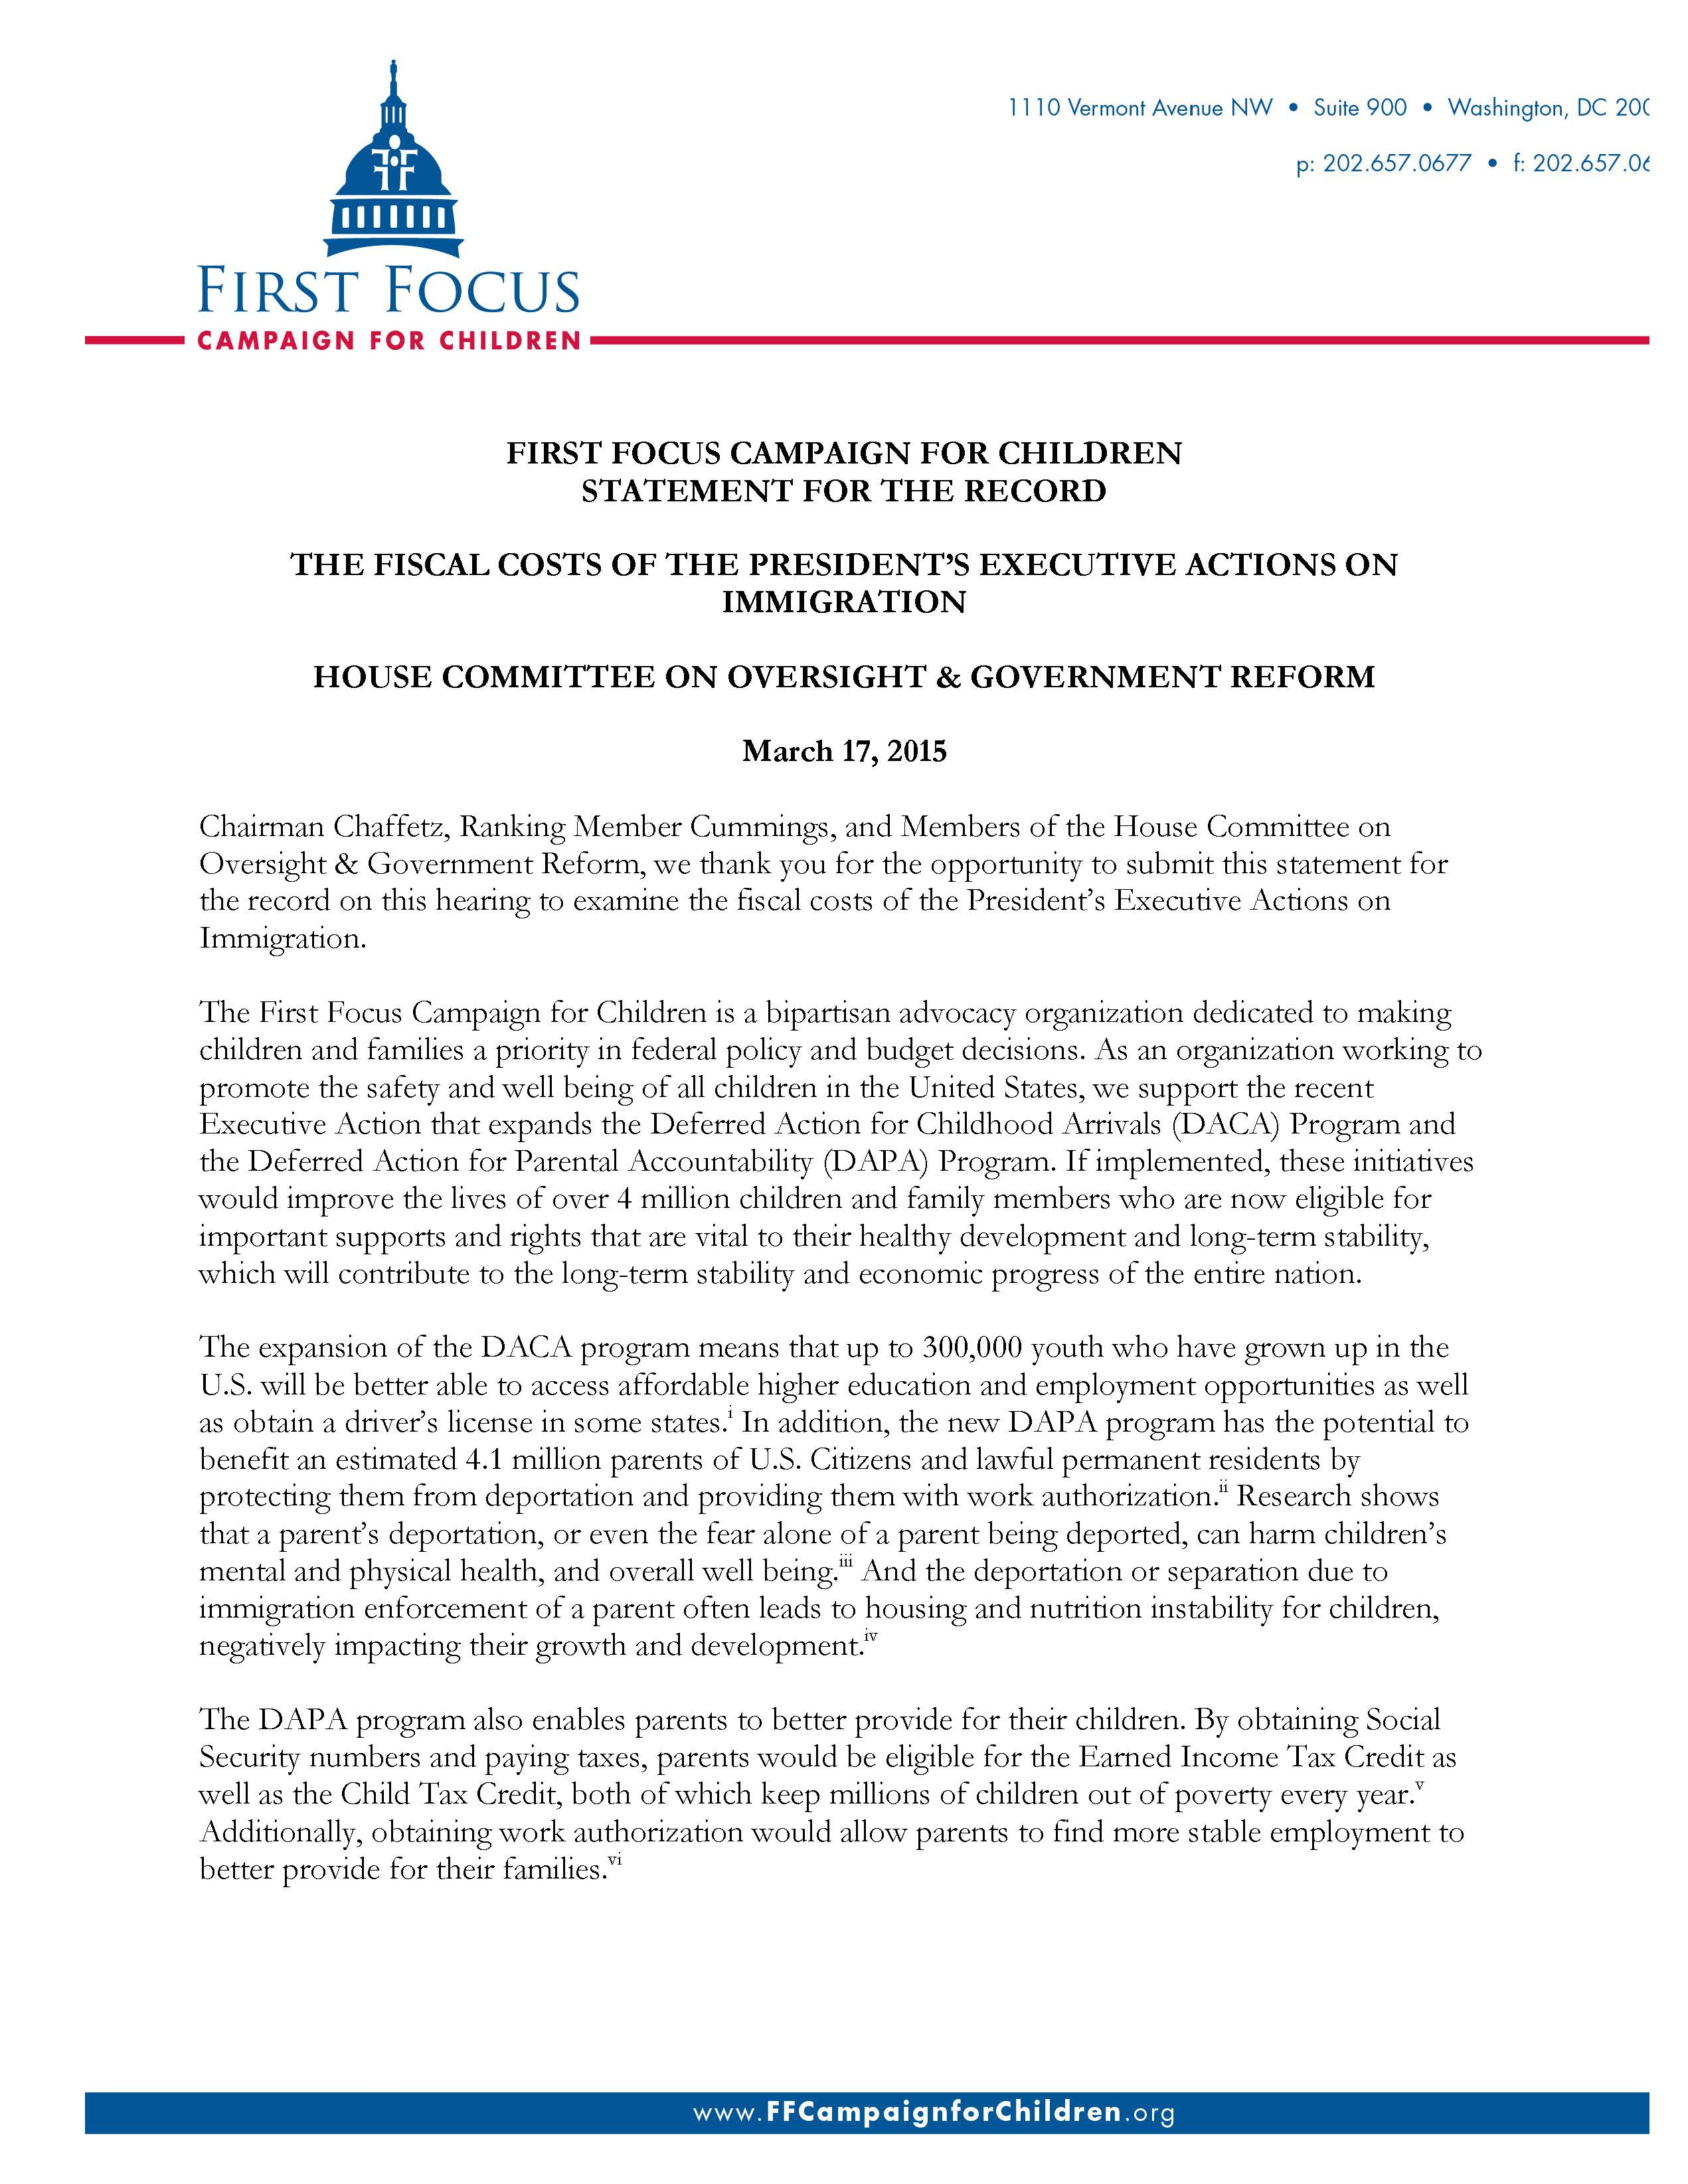 Statement for the Record, The Fiscal Costs of The President's Executive Actions on Immigration_Page_1